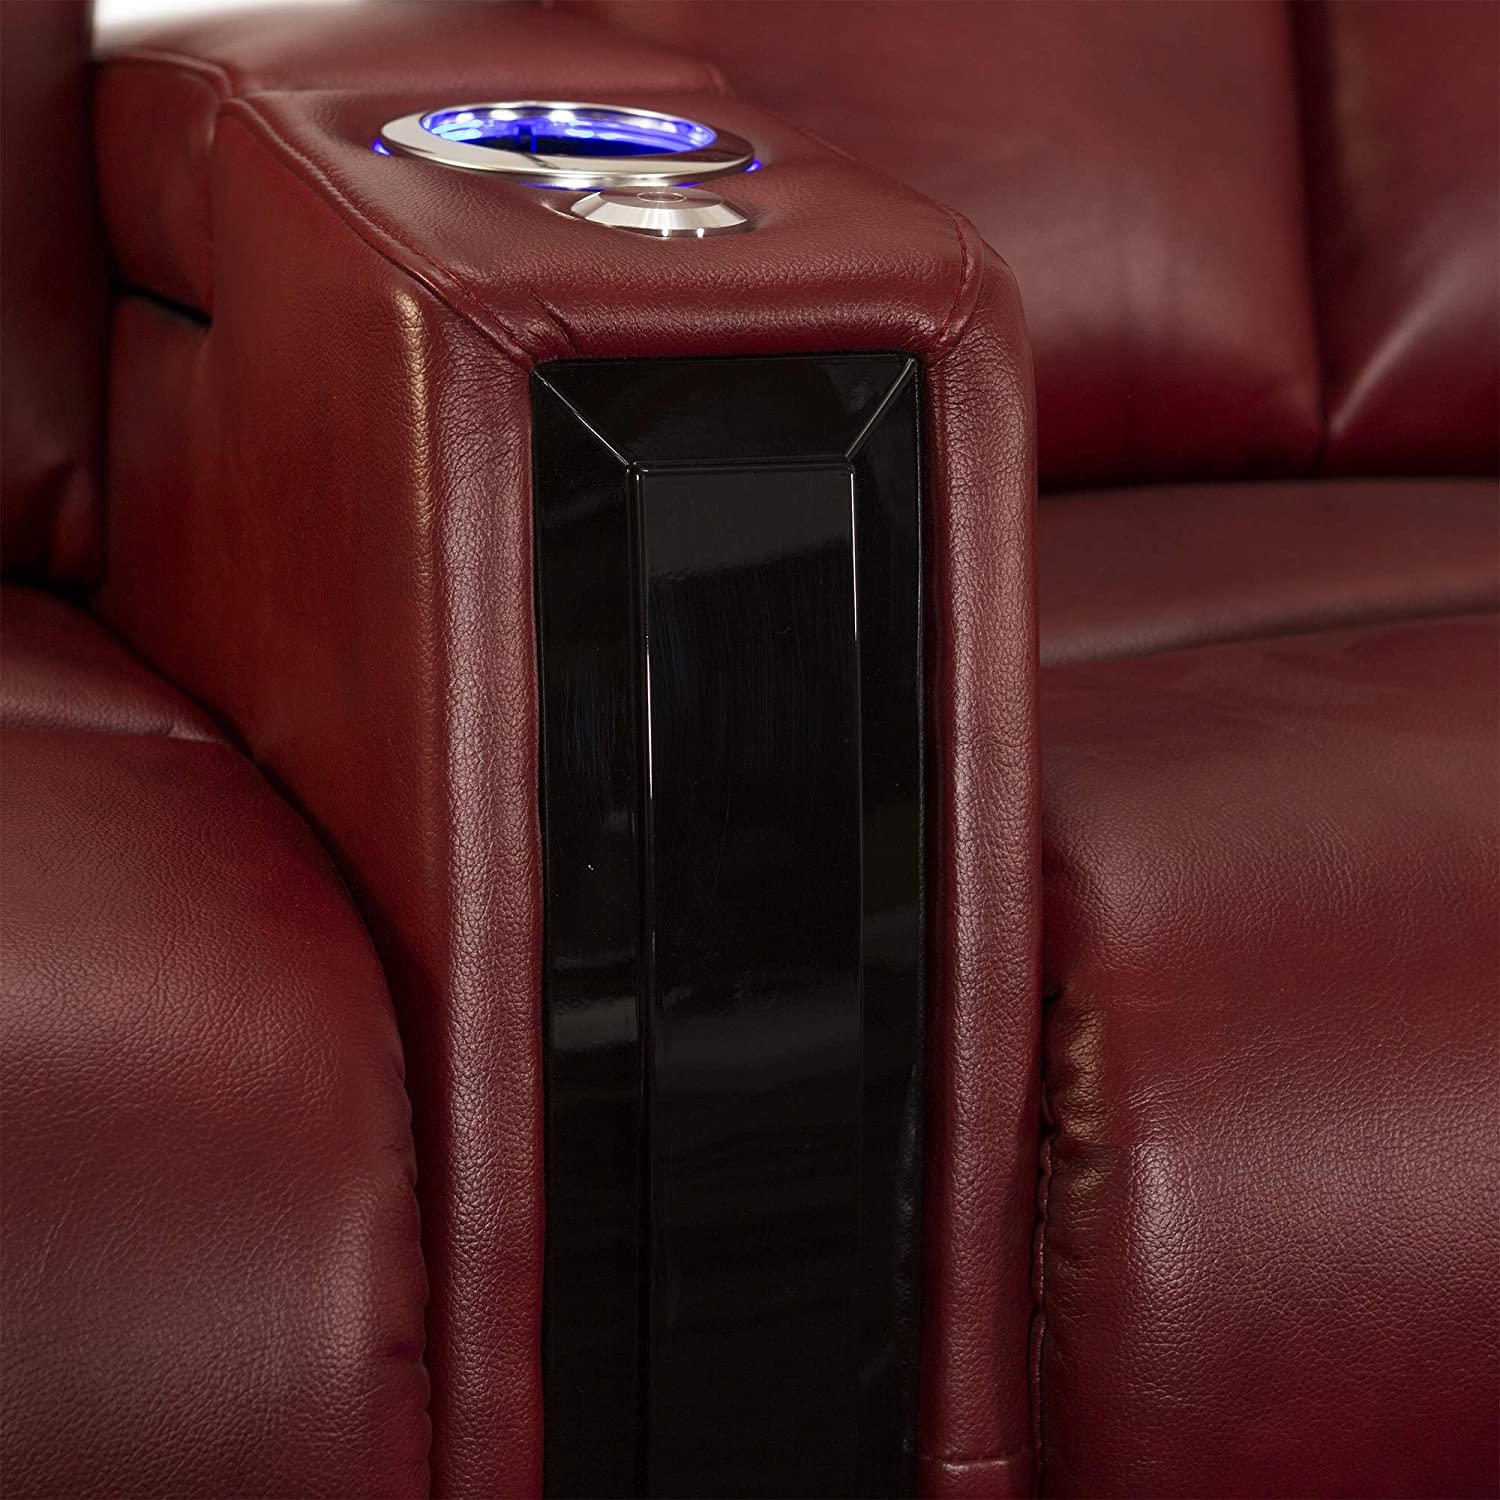 Seatcraft Seville Home Theater Seating Leather Gel Power Recline with Wood Accents, Hidden in-Arm Storage, Swivel Tray Tables, SoundShaker, and Lighted Cup Holders and Base, Row of 4, Red